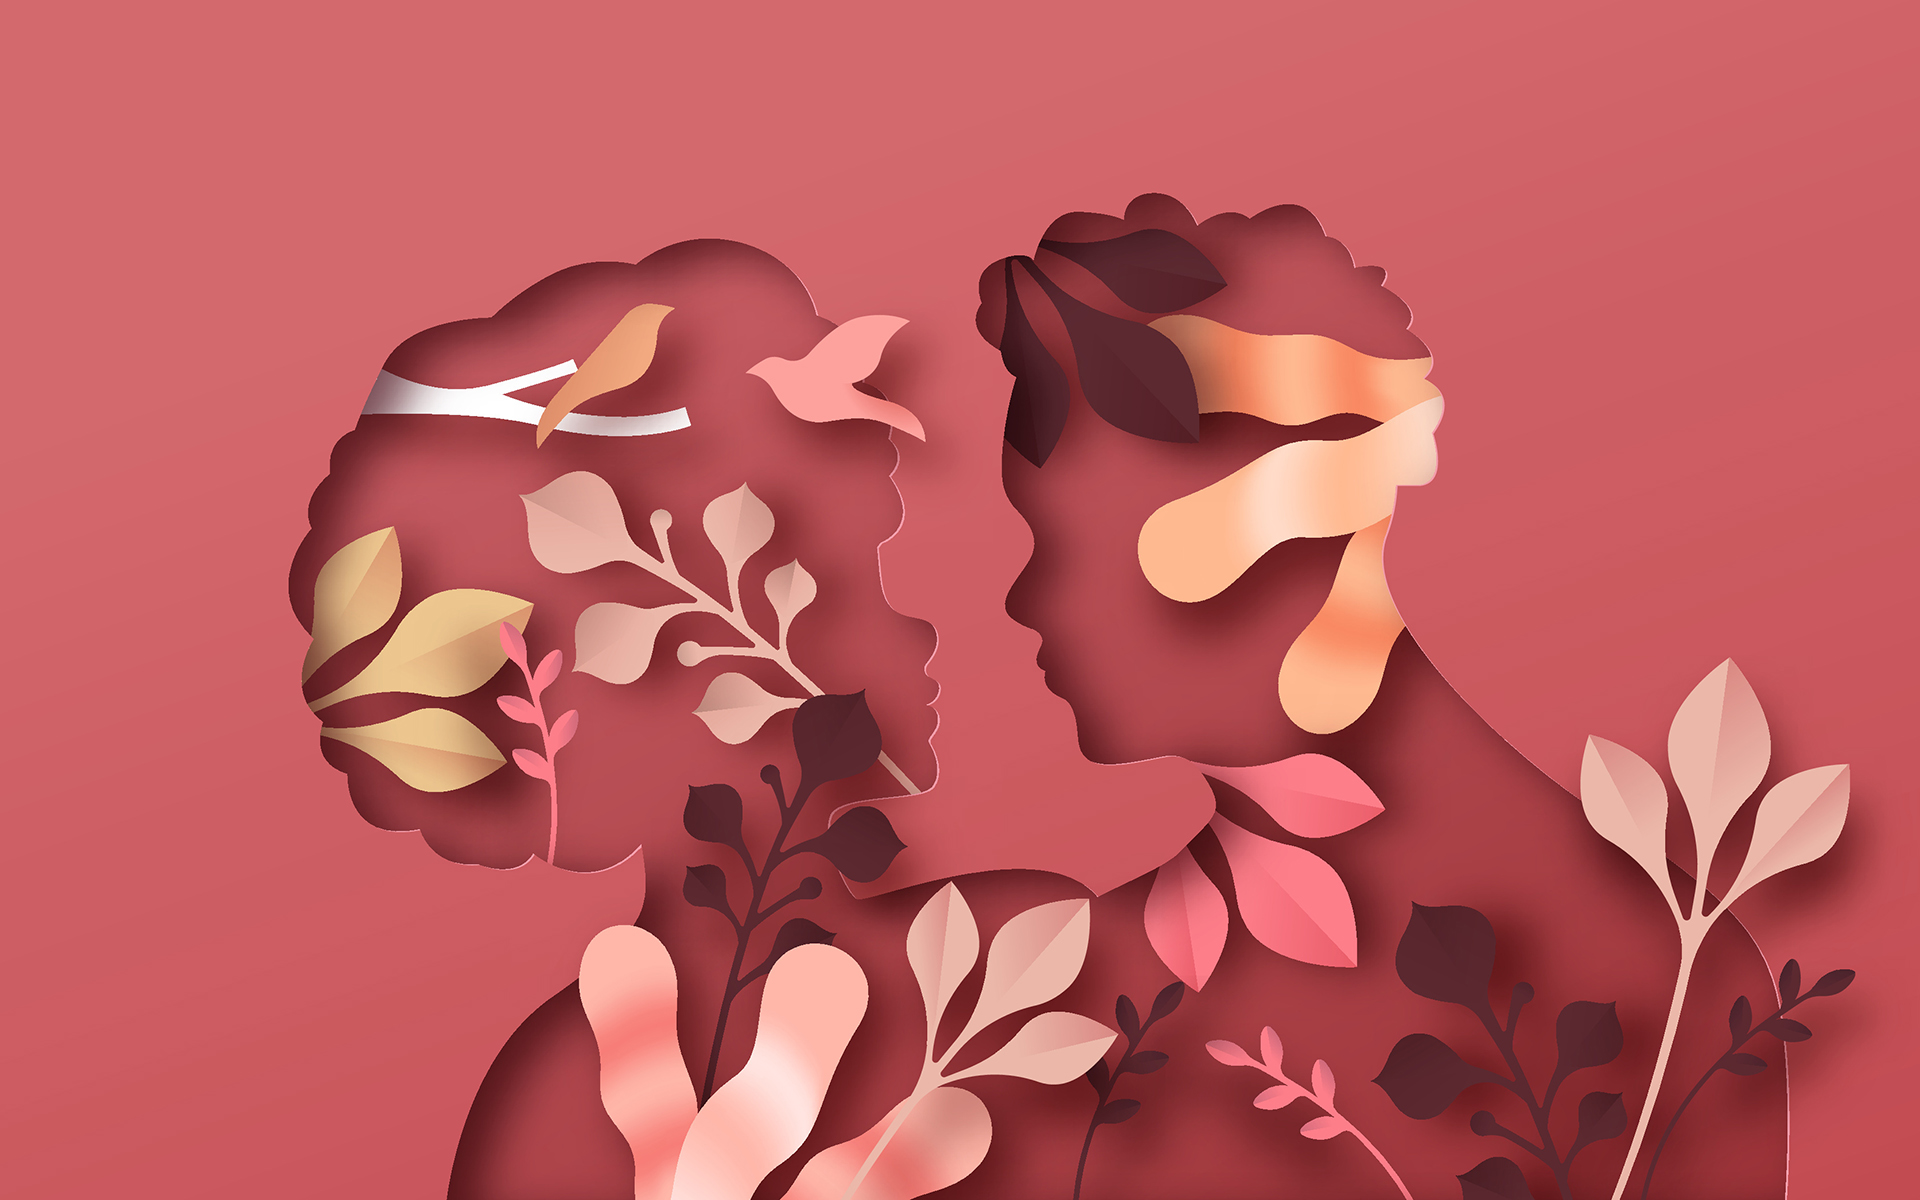 5 Research-Backed Ways to Strengthen Your Marriage - Illustration of a man and woman hugging